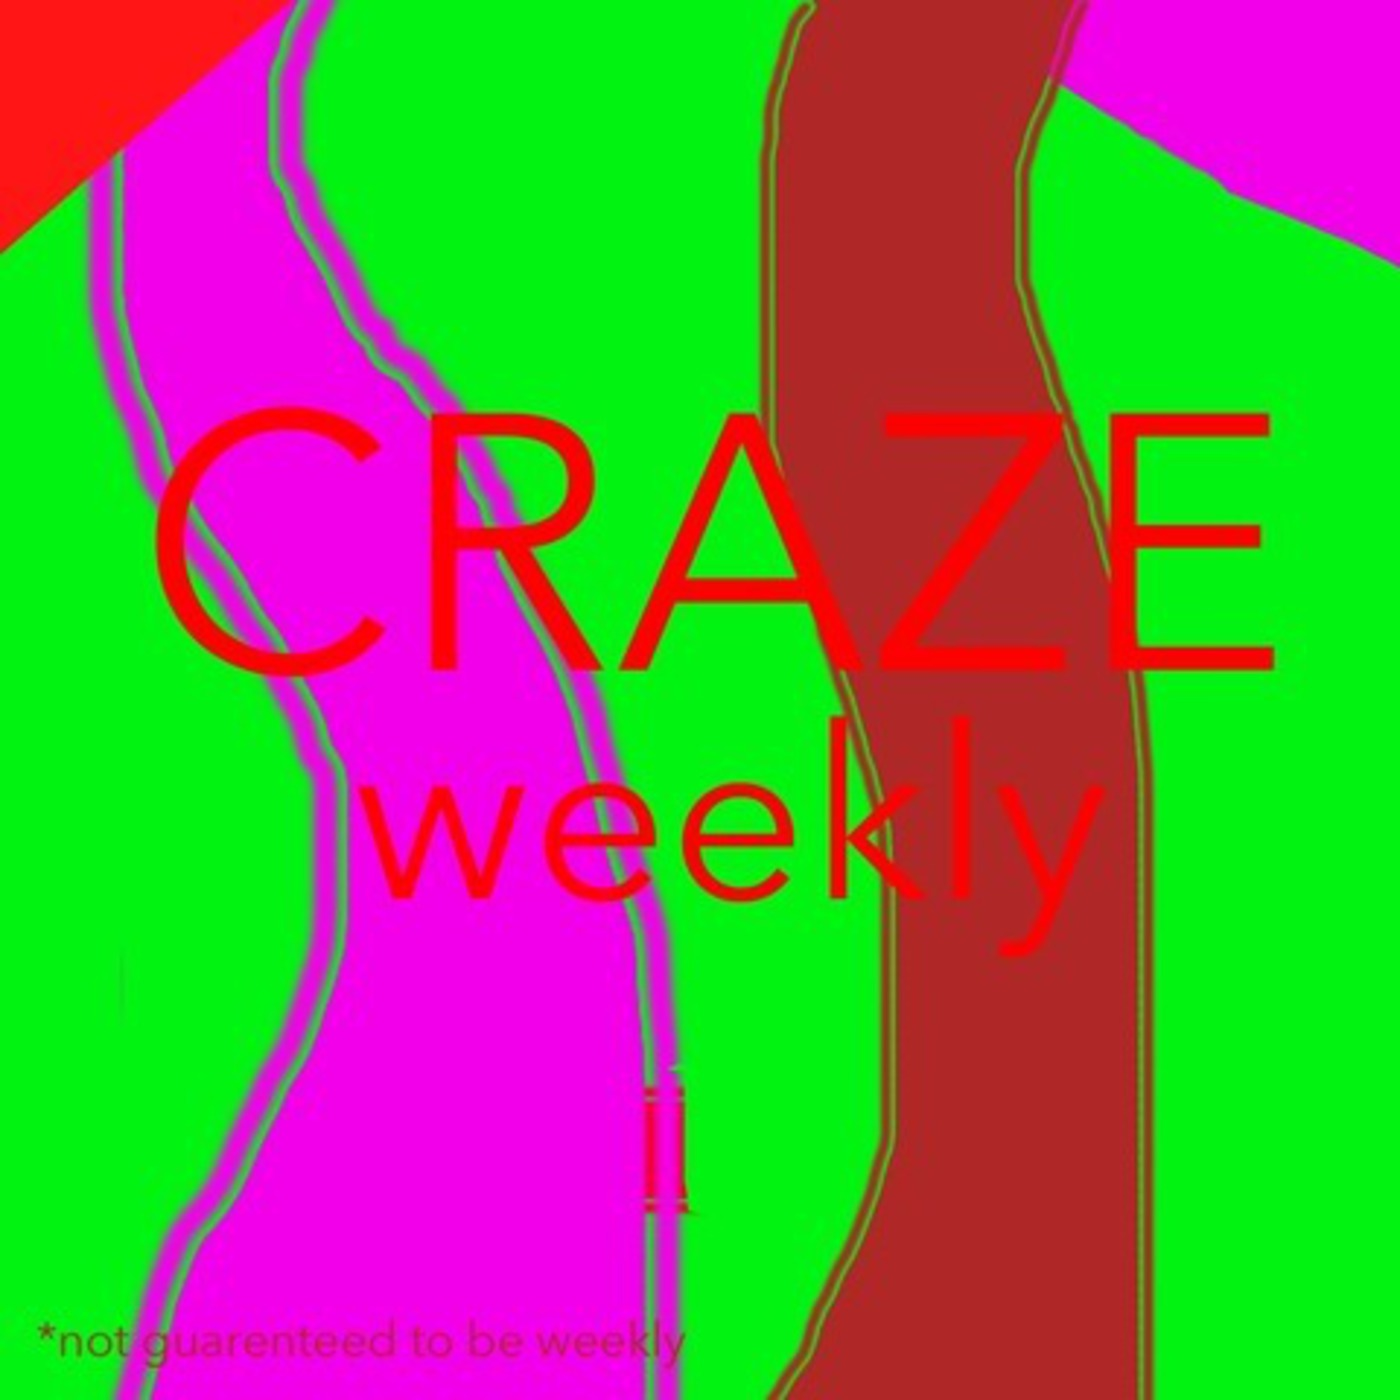 CRAZE Gaming Weekly